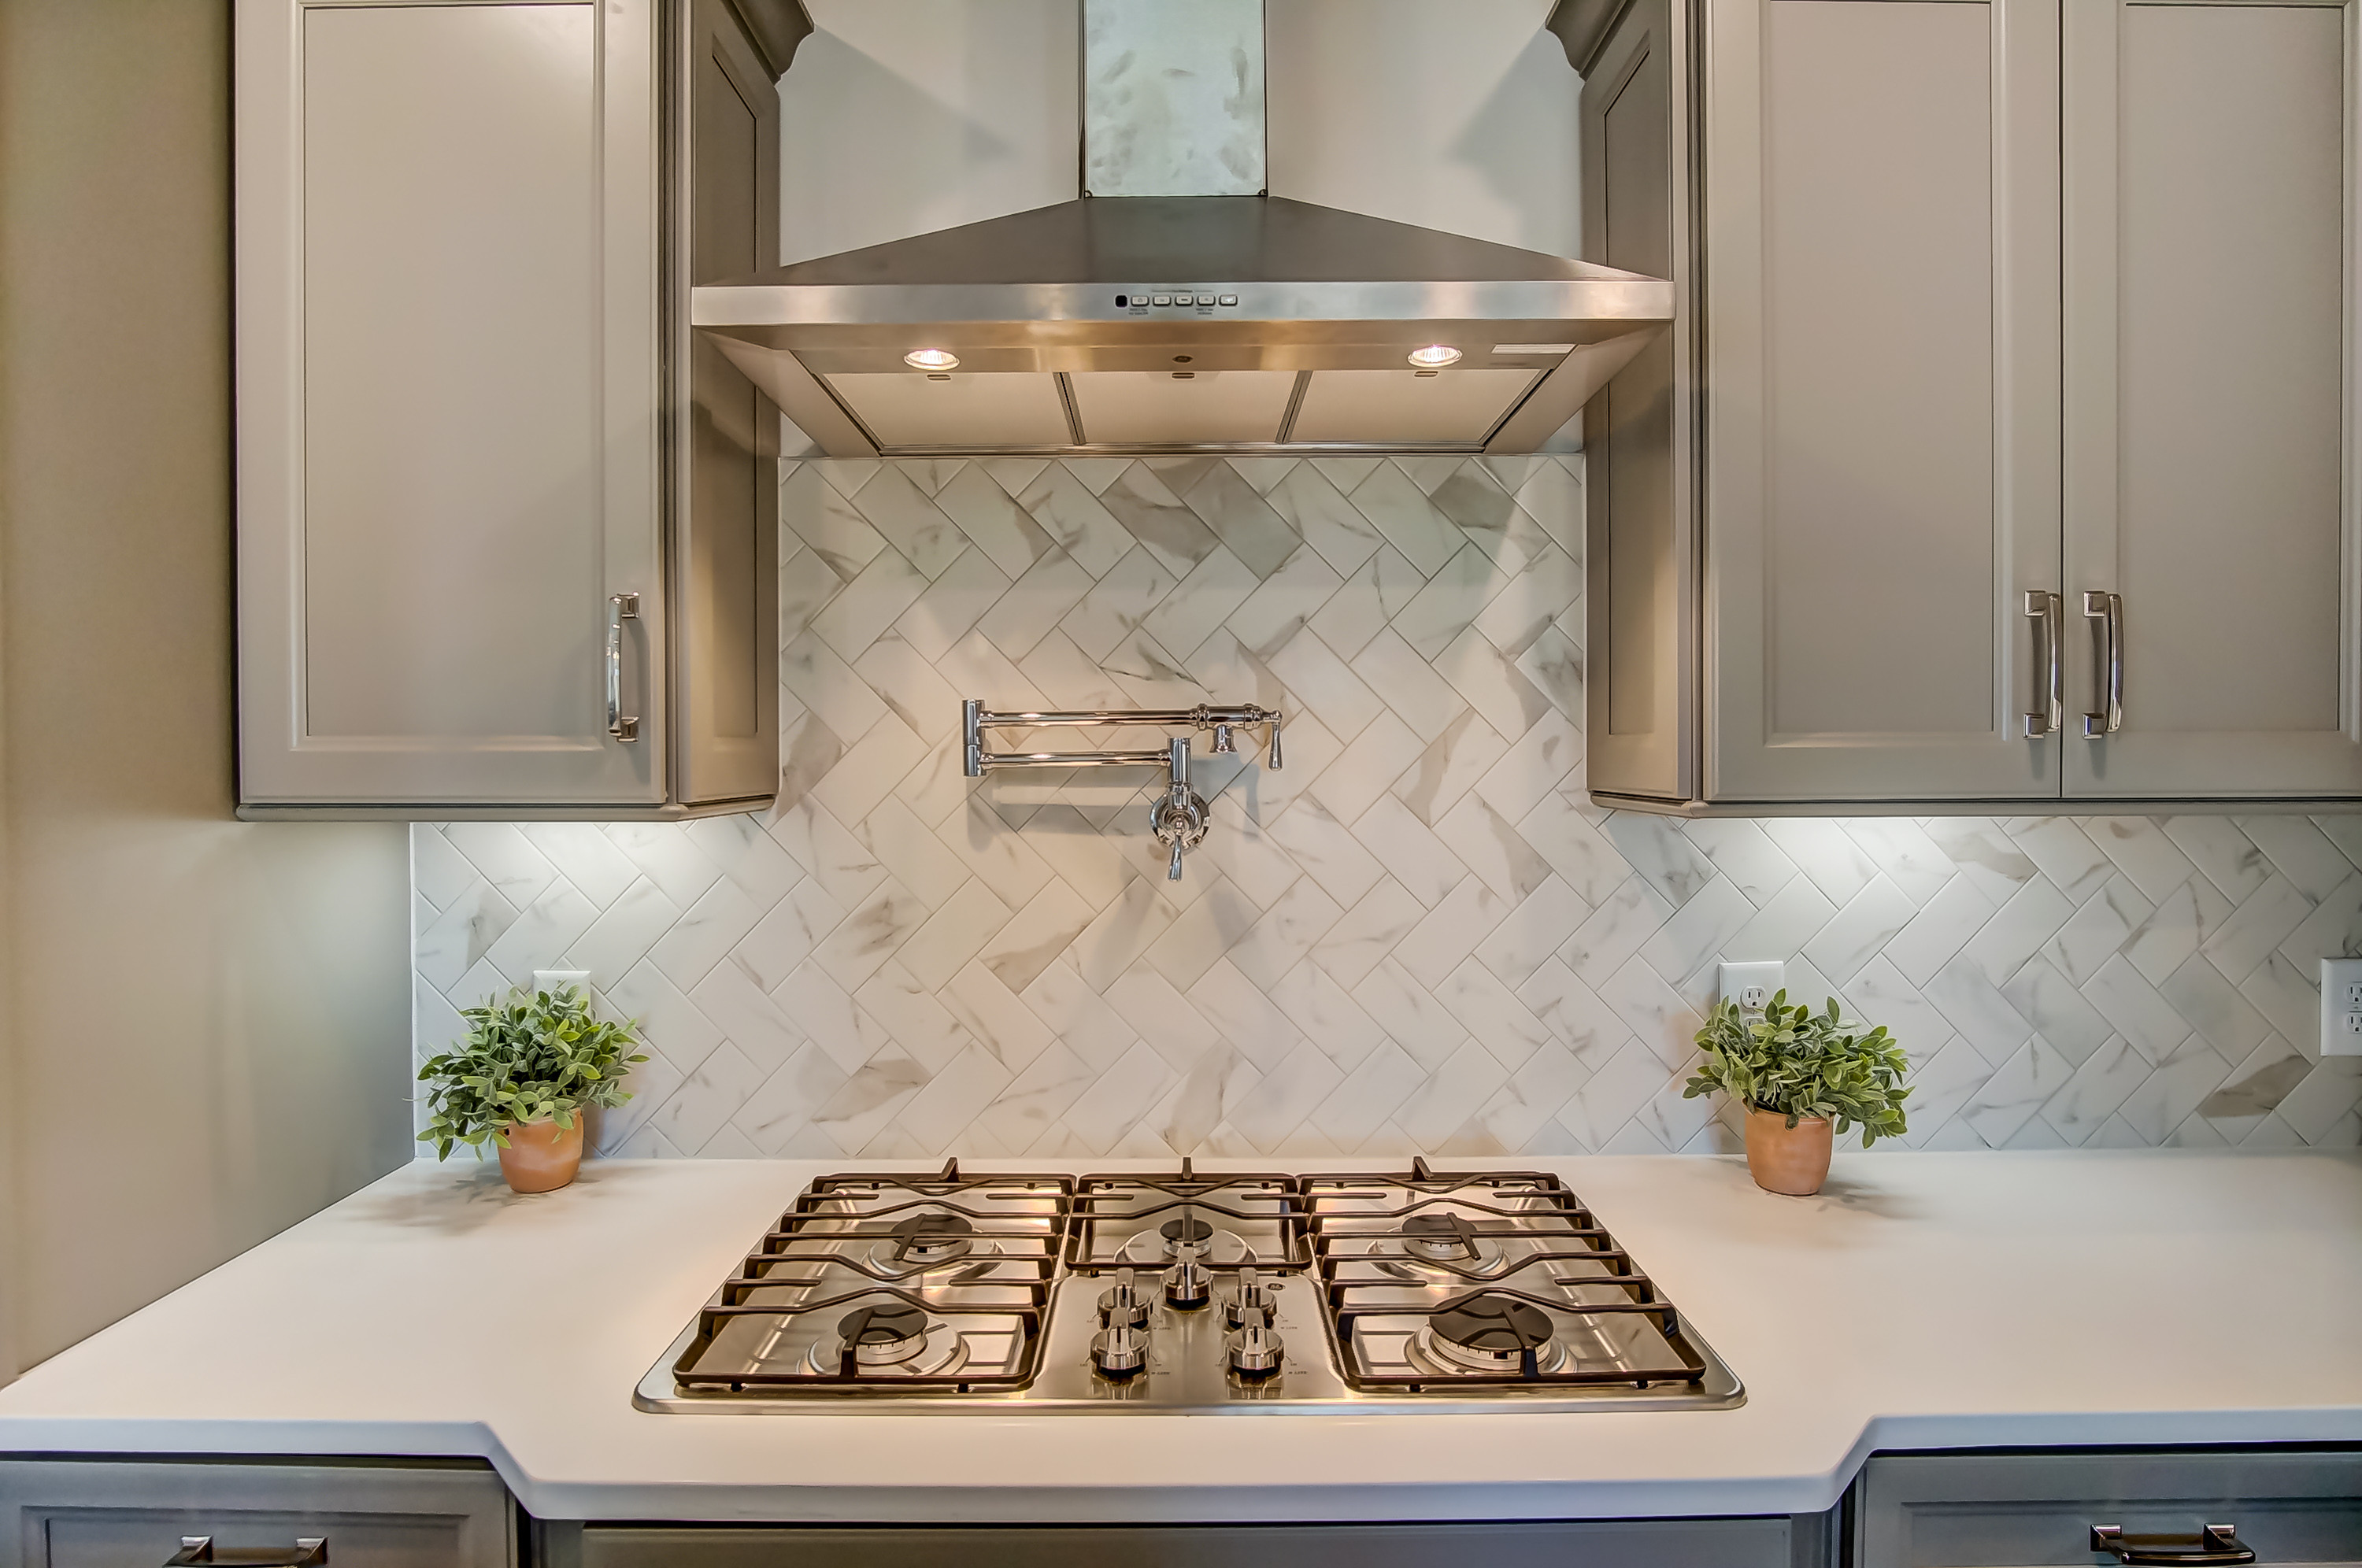 montague-laurel walk-kitchen 2.jpg